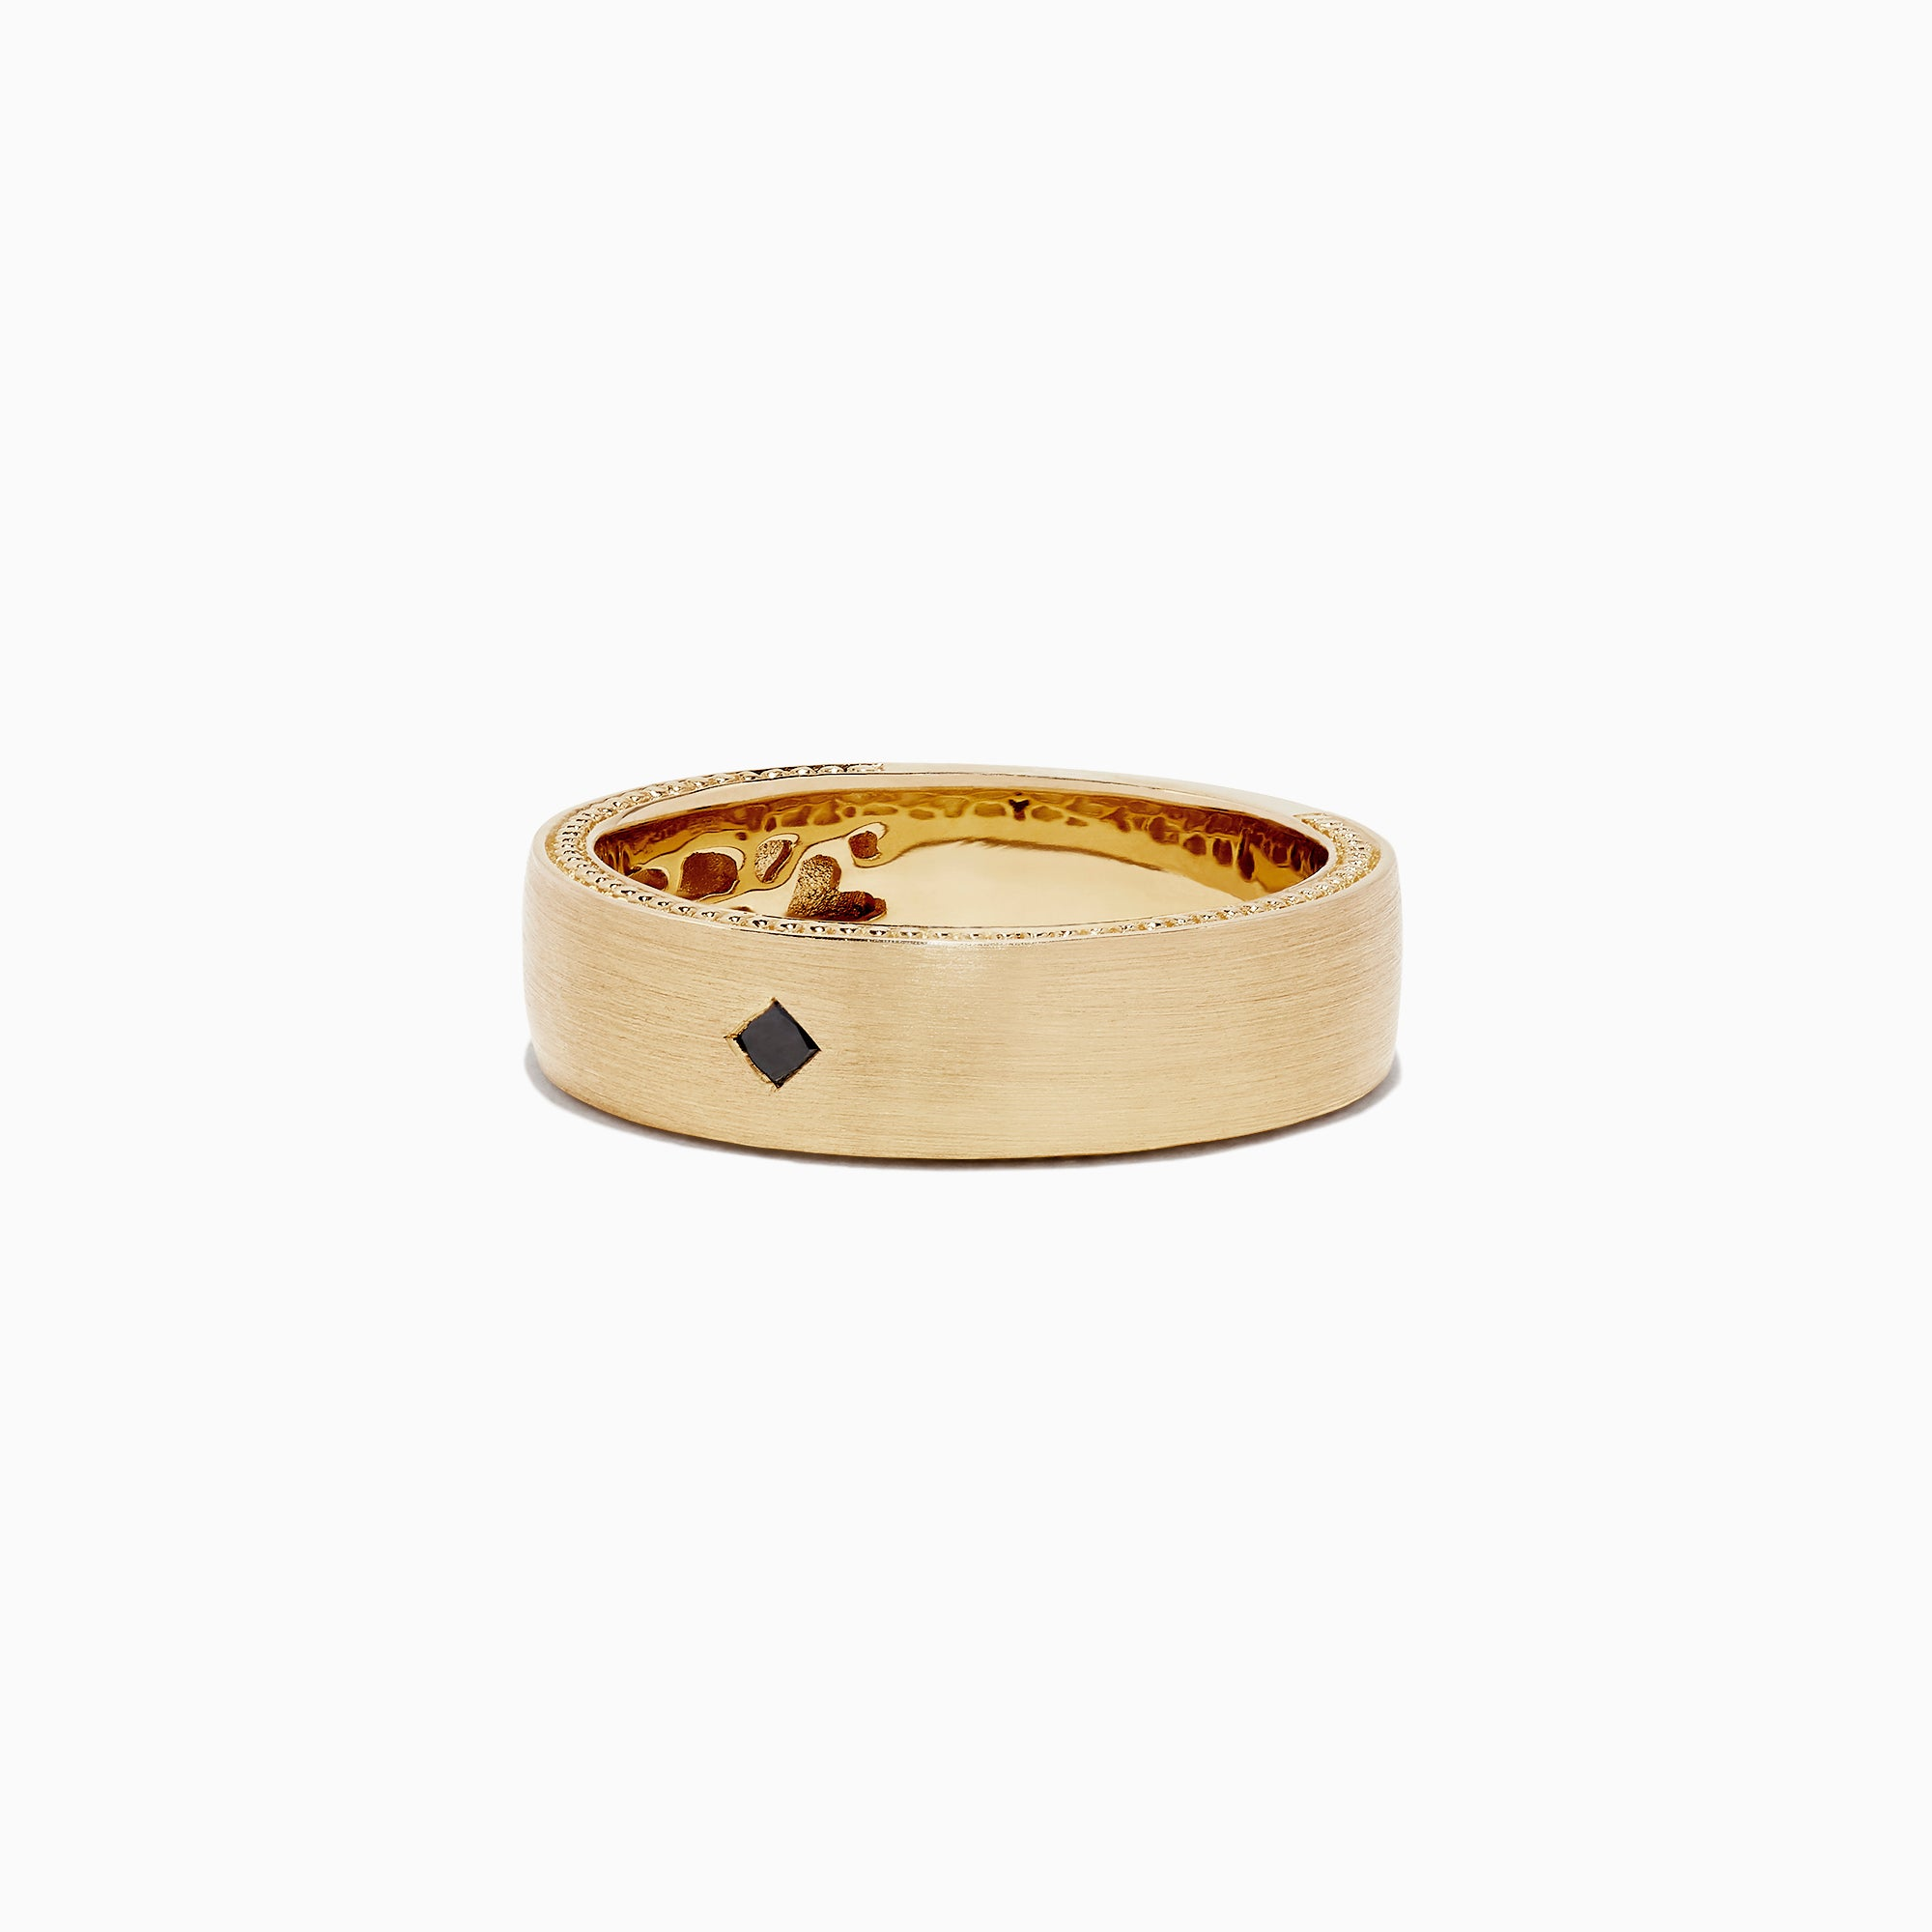 Effy Men's 14K Yellow Gold Black Diamond Ring, 0.07 TCW